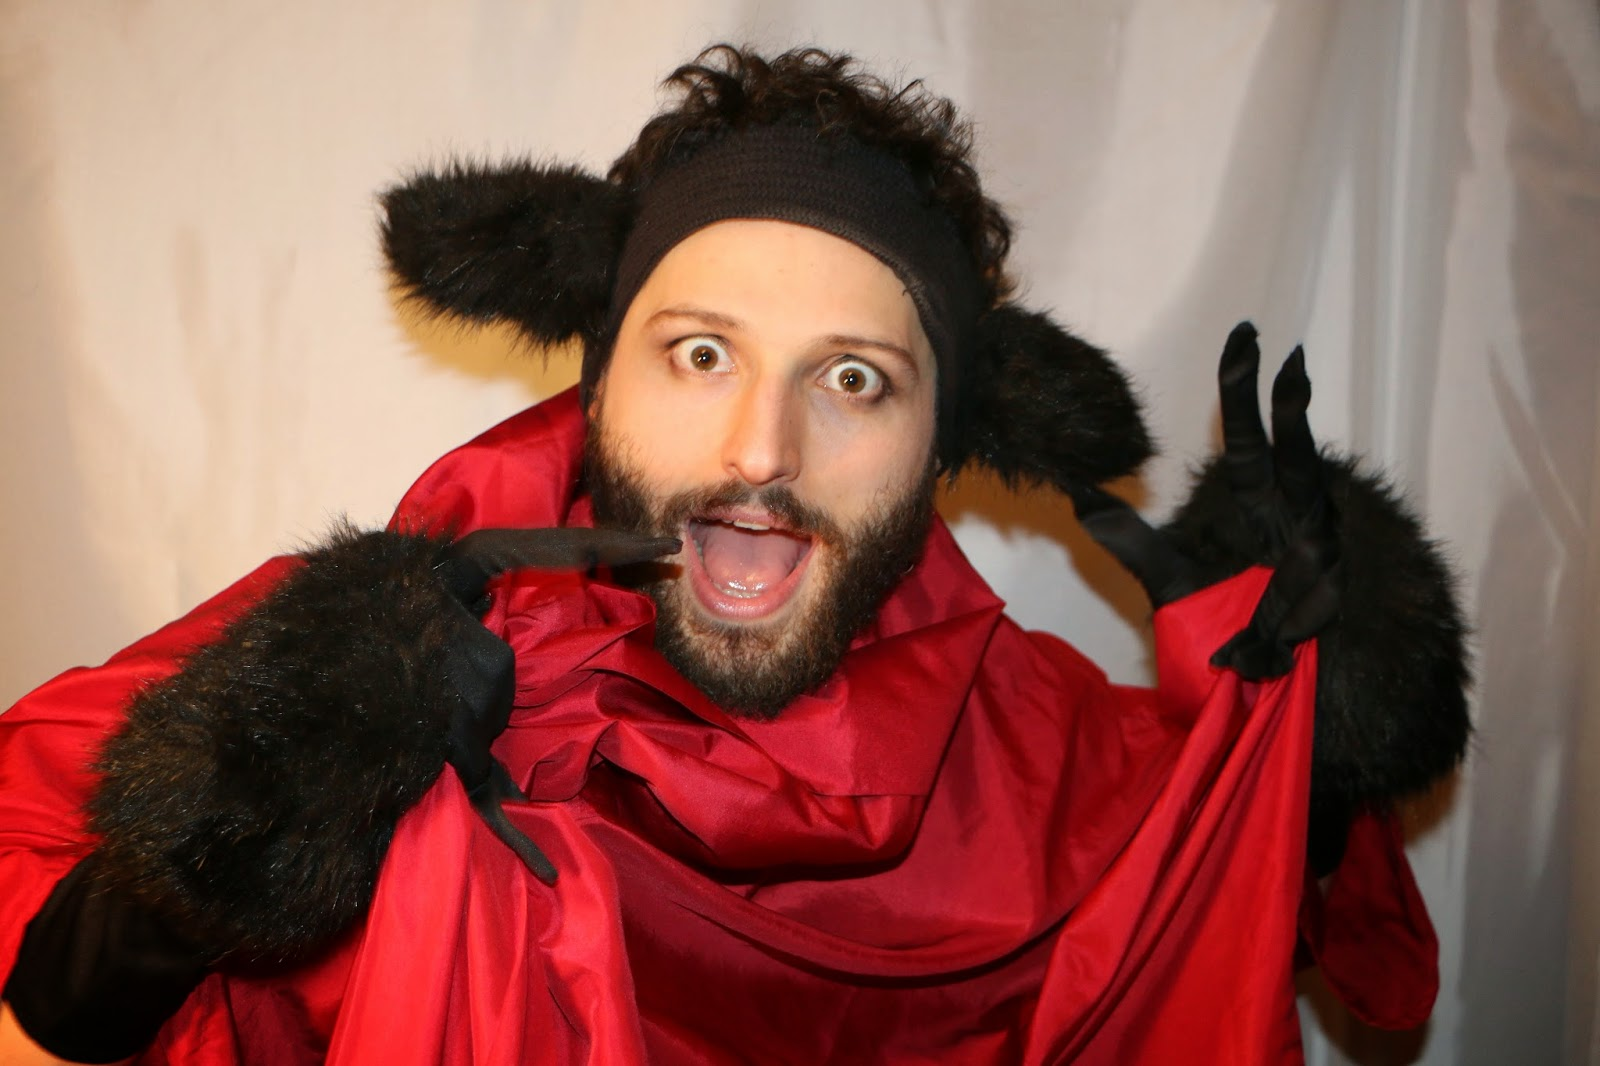 THE CHARMING BIG BAD WOLF-1R-RED RIDING HOOD 2015--GLEAMS THEATER--IRA SOKOLOVA- PHOTO: SHAHRZAD GHAFFARI WESTMOUNT, QUEBEC, CANADA